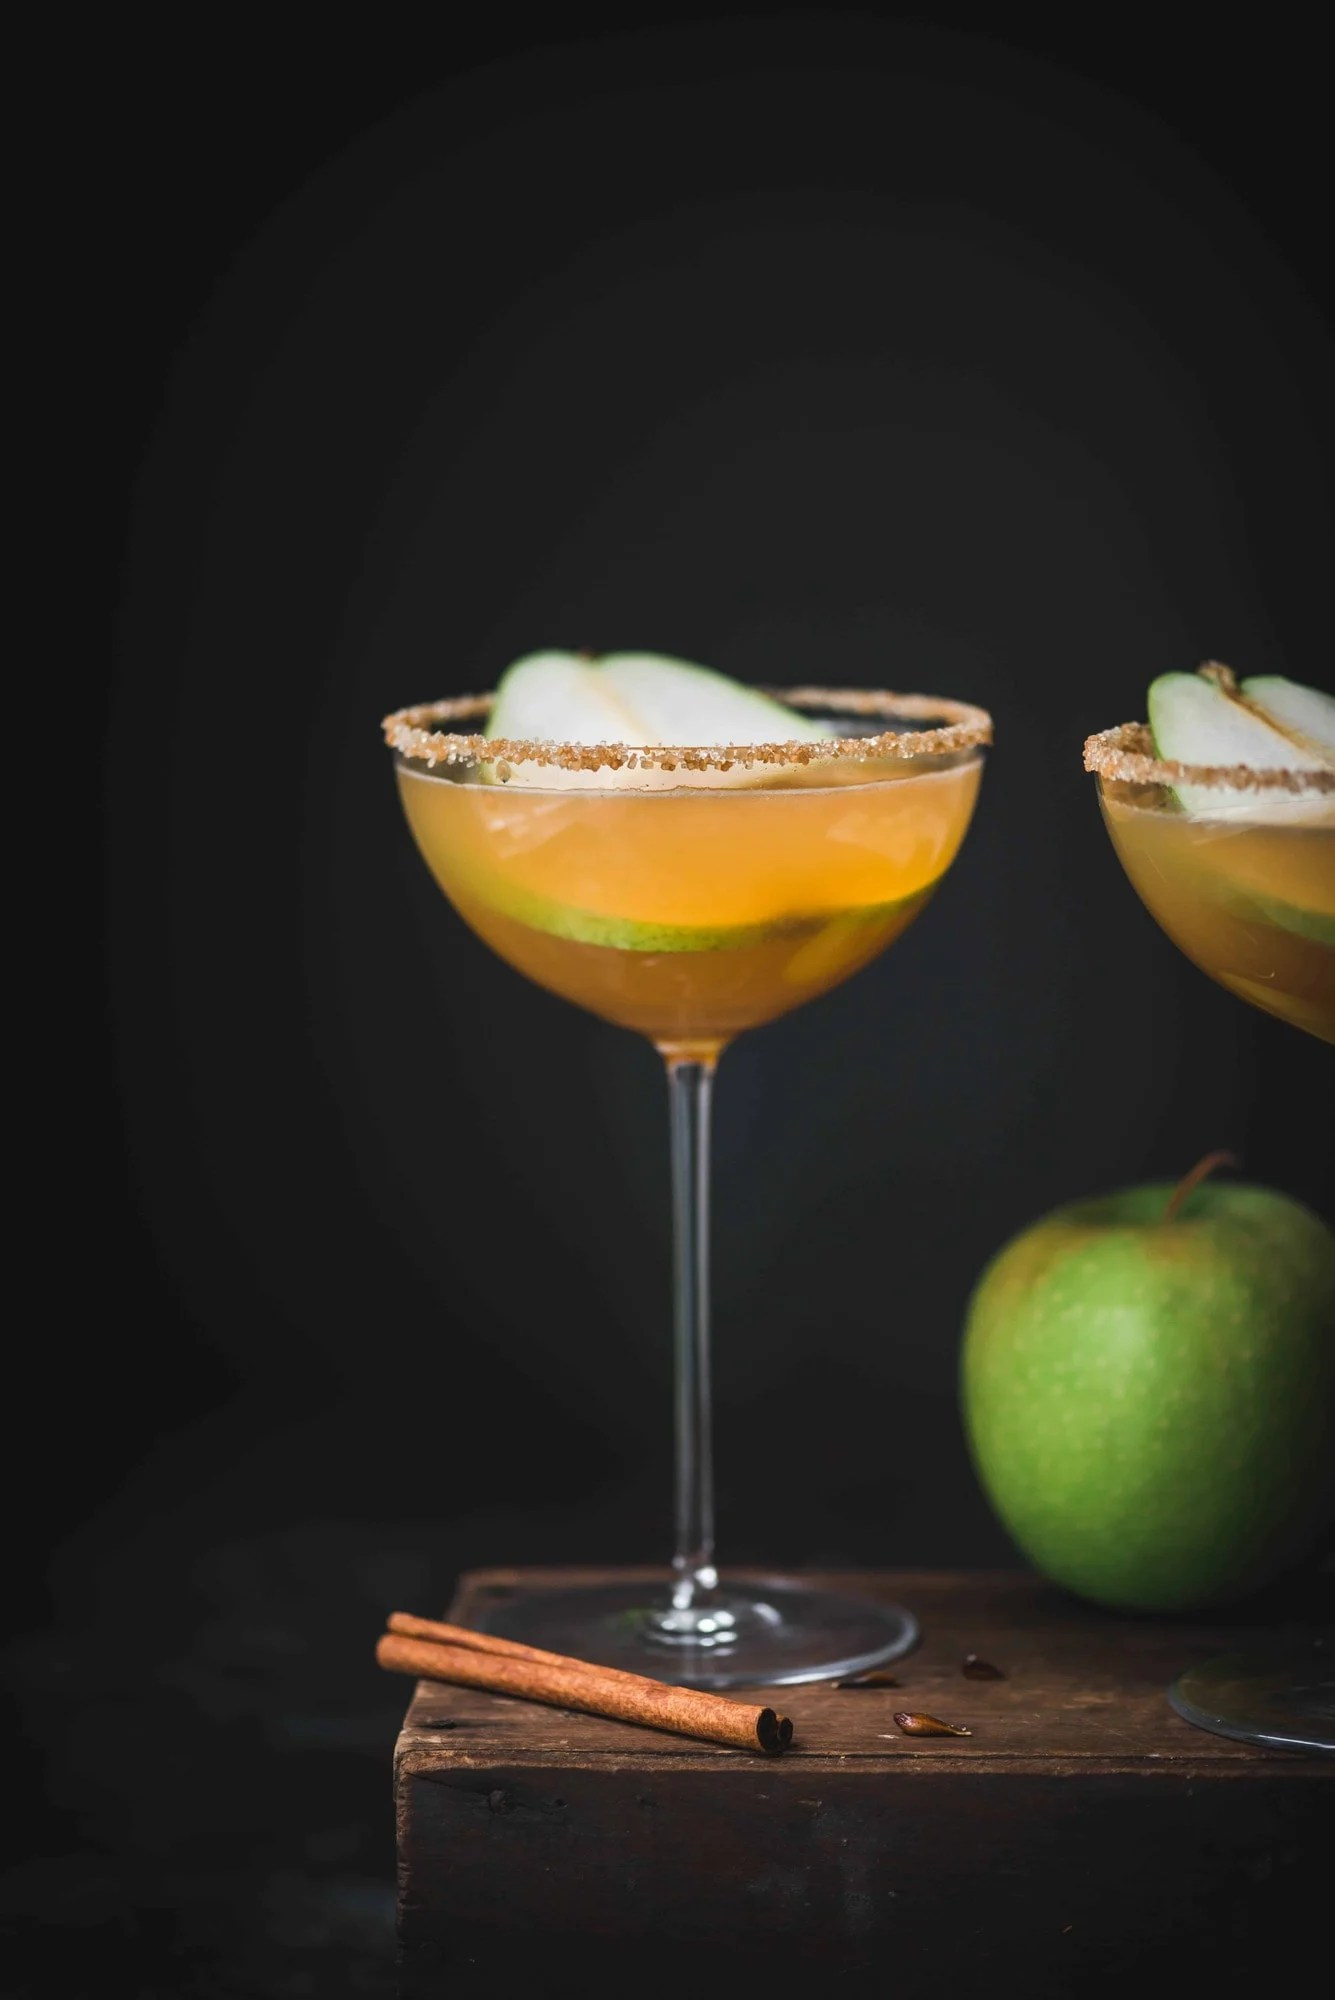 Apple cider pear martini in a long-stemmed coupe glass with dark moody background